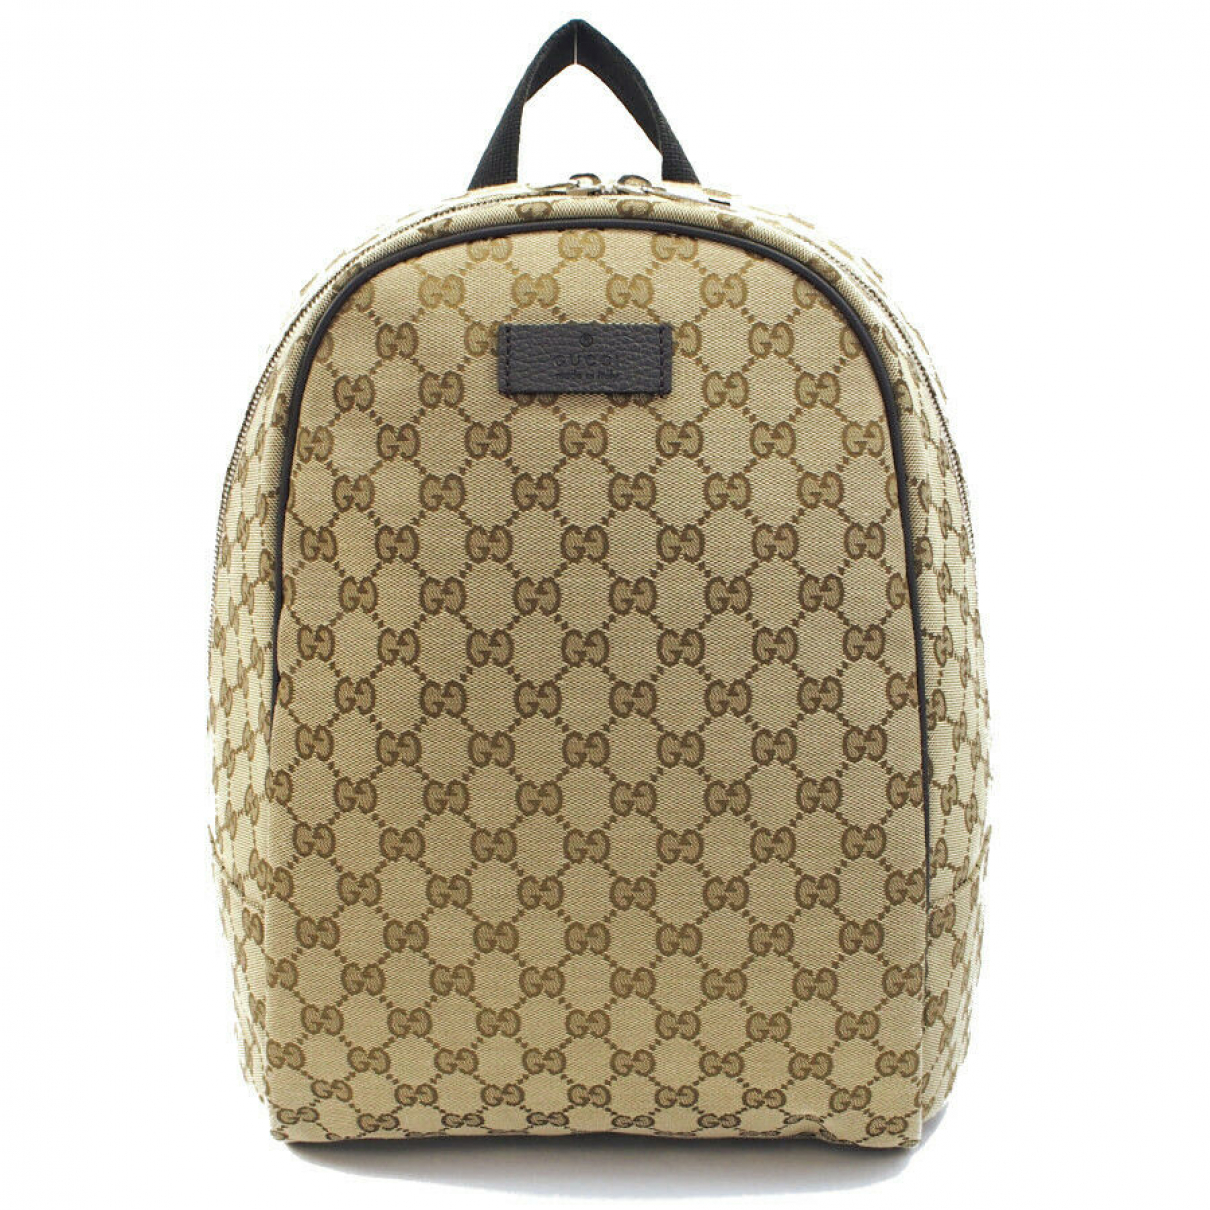 Gucci N Leather backpack for Women N